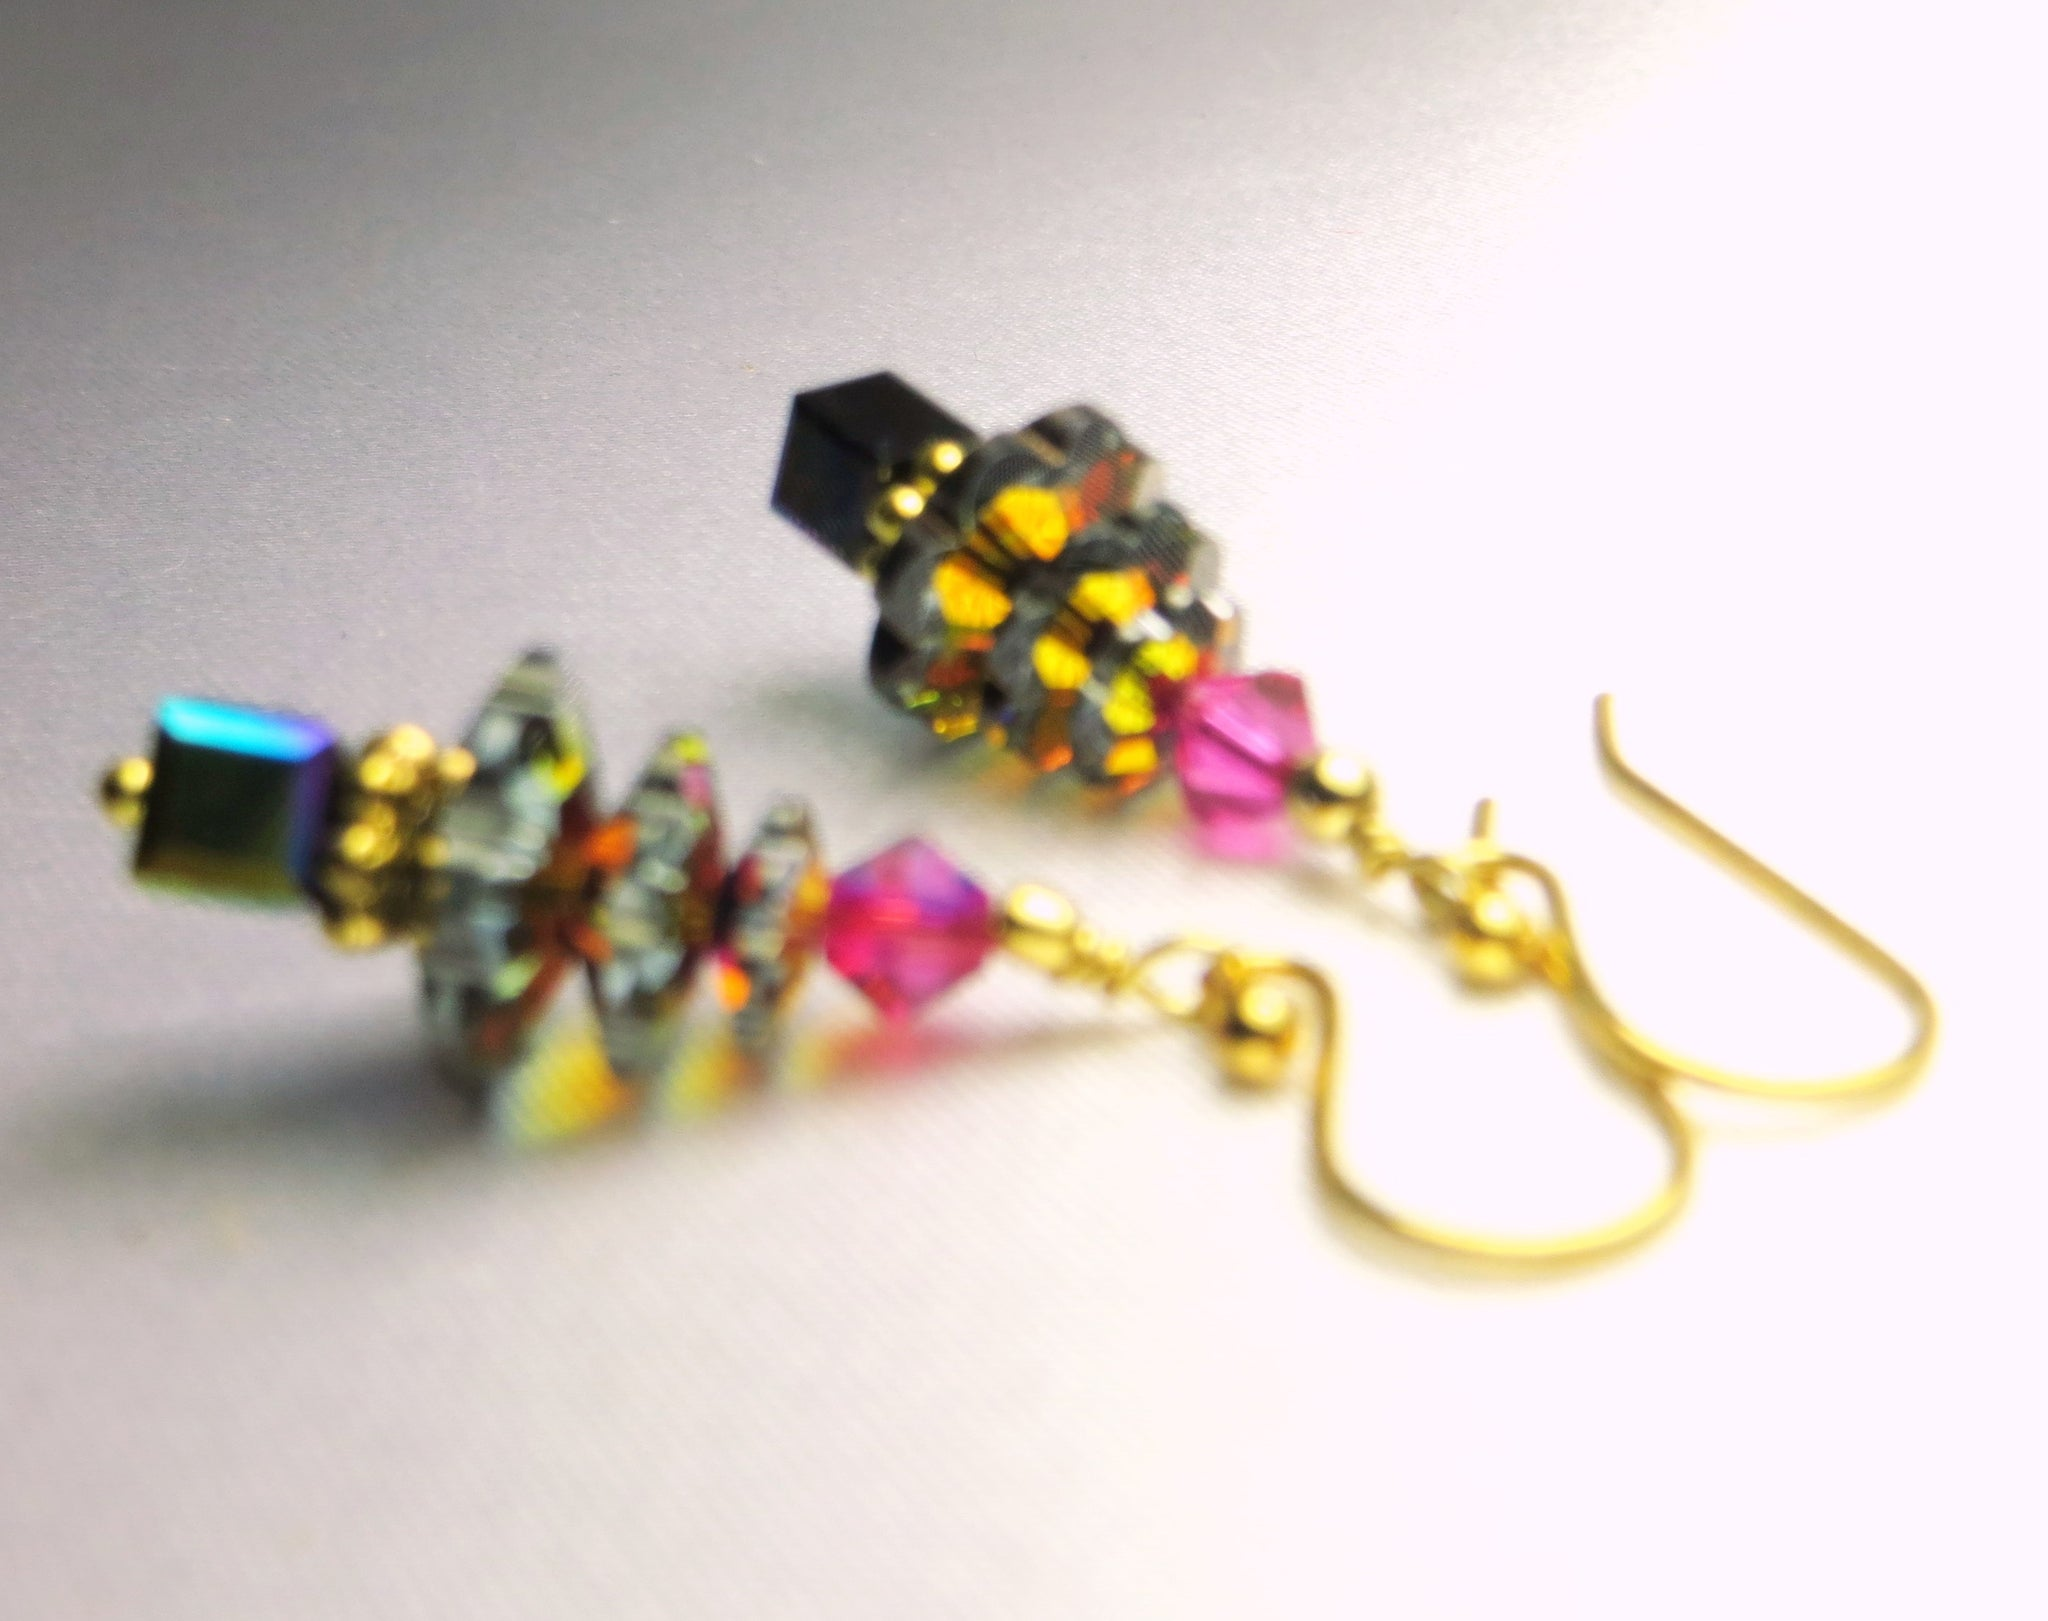 Christmas Tree Earrings in Swarovski Crystal Multicolor Vocano on 14k gold fill - Odyssey Creations